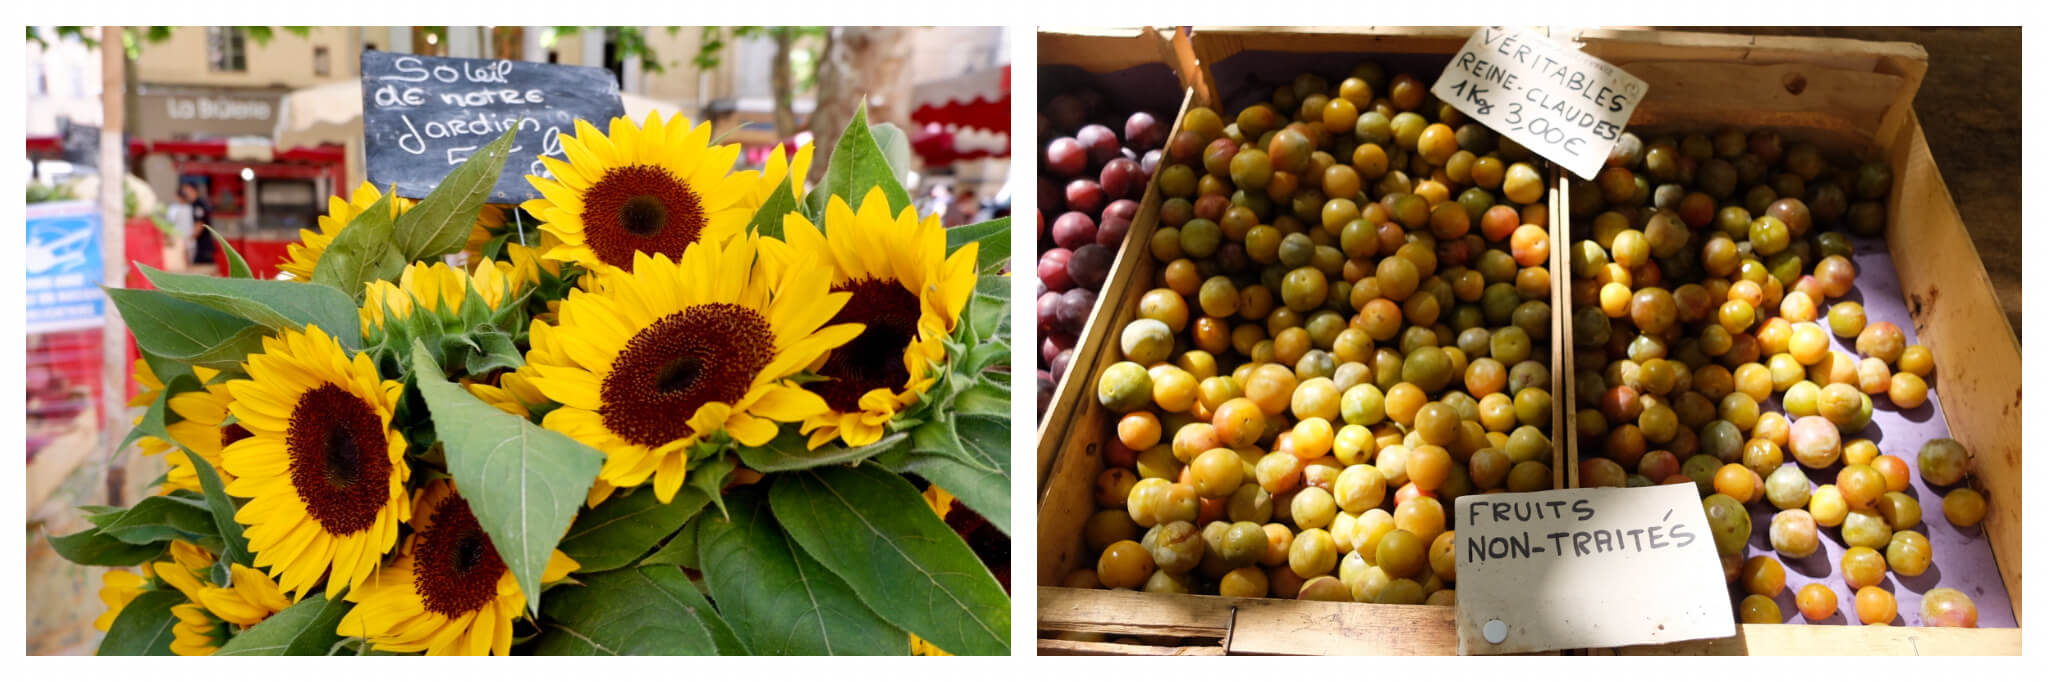 Left: sunflowers at a market in Provence. Right: reine-claude plums at a Provence market.